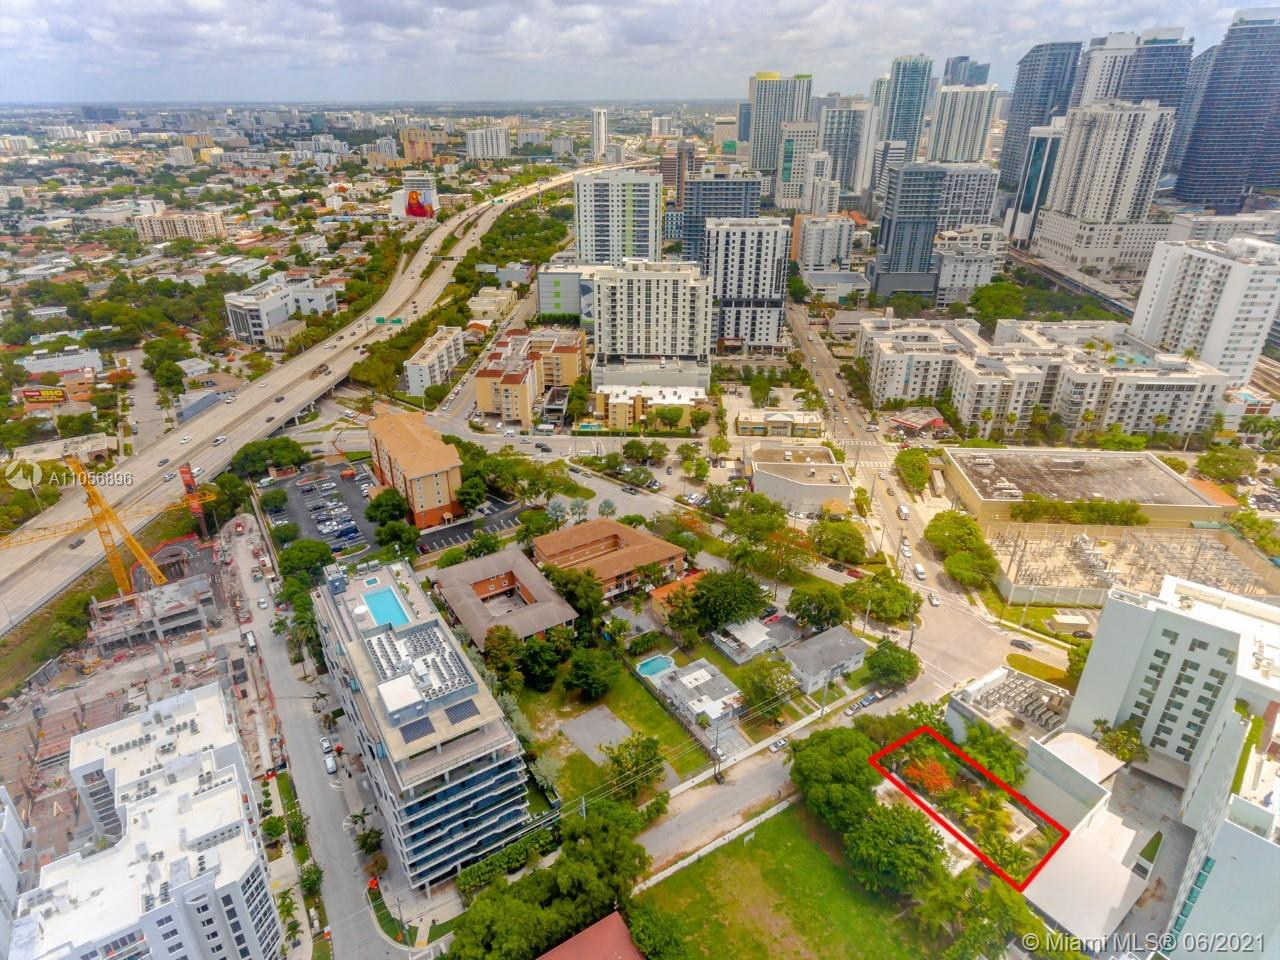 Excellent property for investors, 5,850 SF Lot zoning T6-8. You can buy it for future project. The house is 4 bedroom and 2 bathrooms, impact windows and is surrounded by beautiful trees. This property is centrally located near Brickell city center, restaurants, metro mover, downtown and fast access to major highway. Best deal!!, Call me.